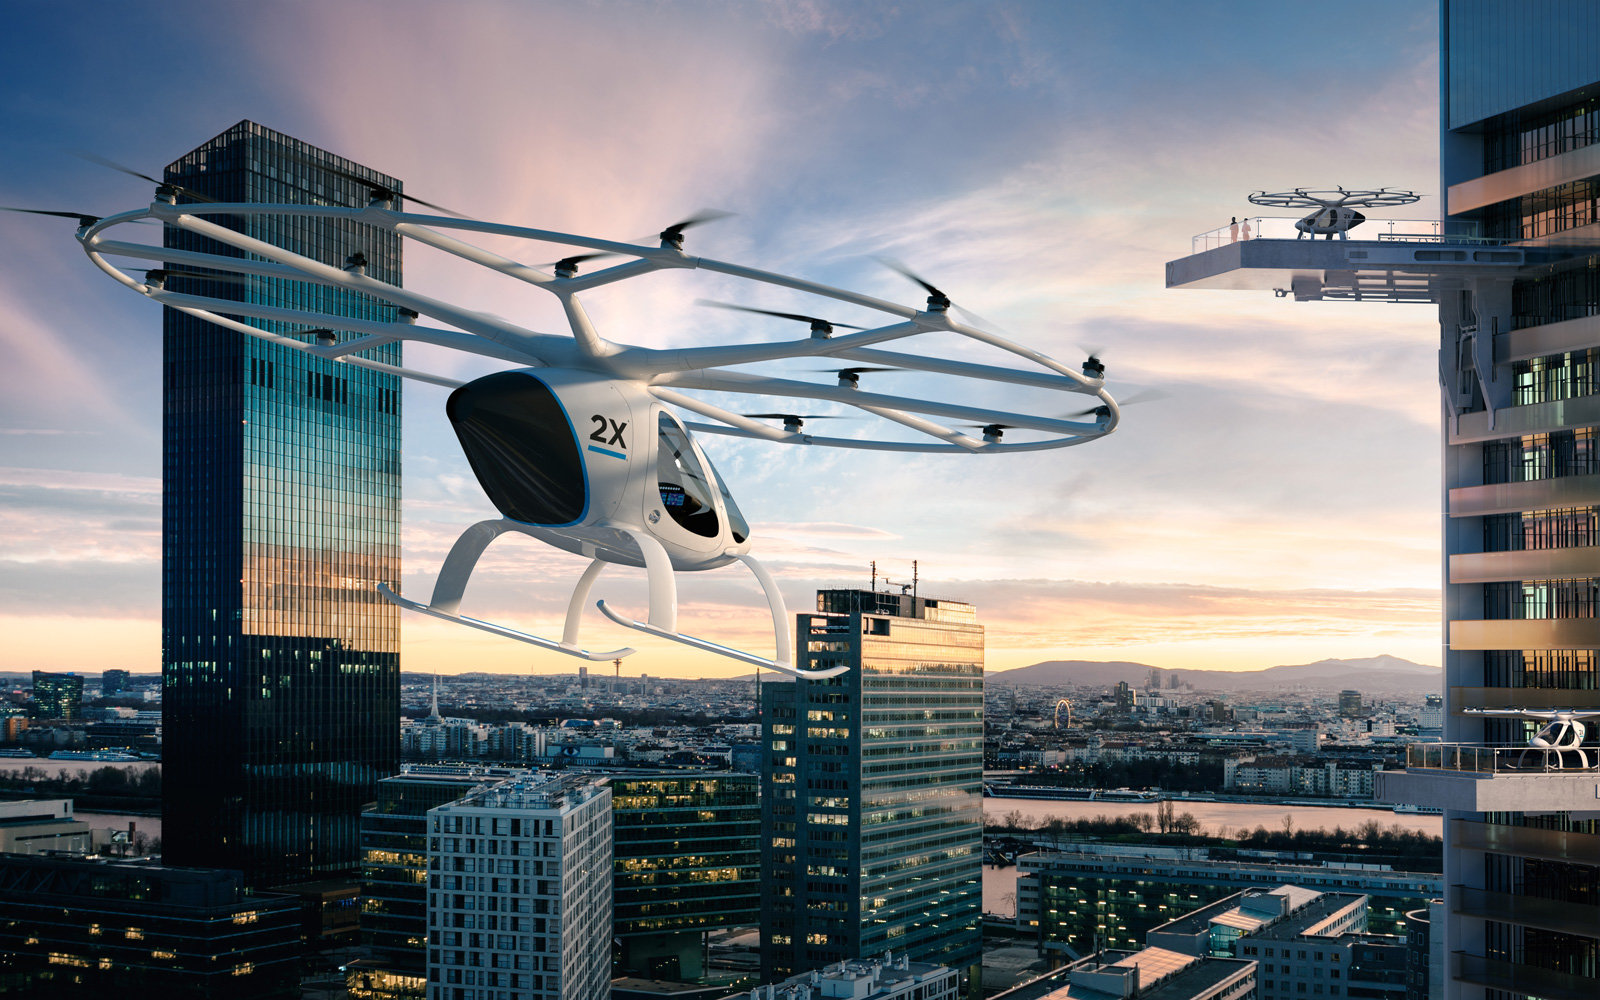 We like the Volocopter because it's just so weird.